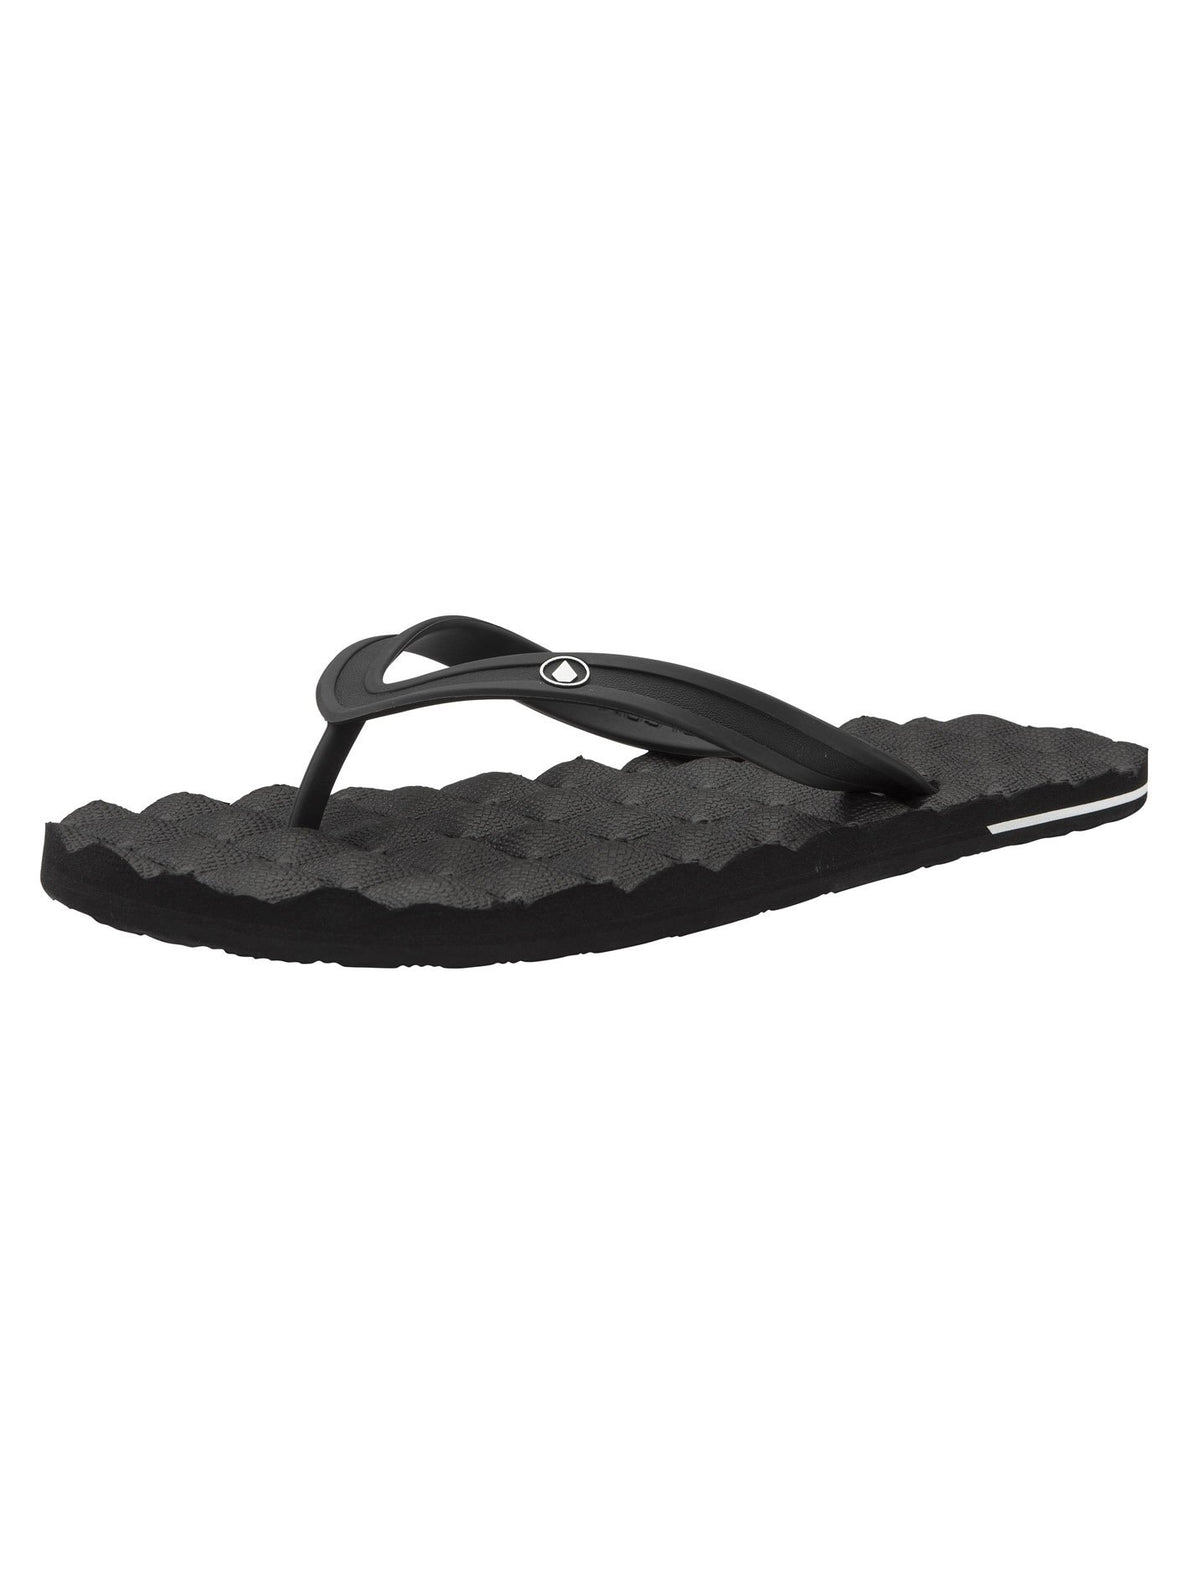 Recliner Ruber 2 Sandals - Black (V0811882_BLK) [5]